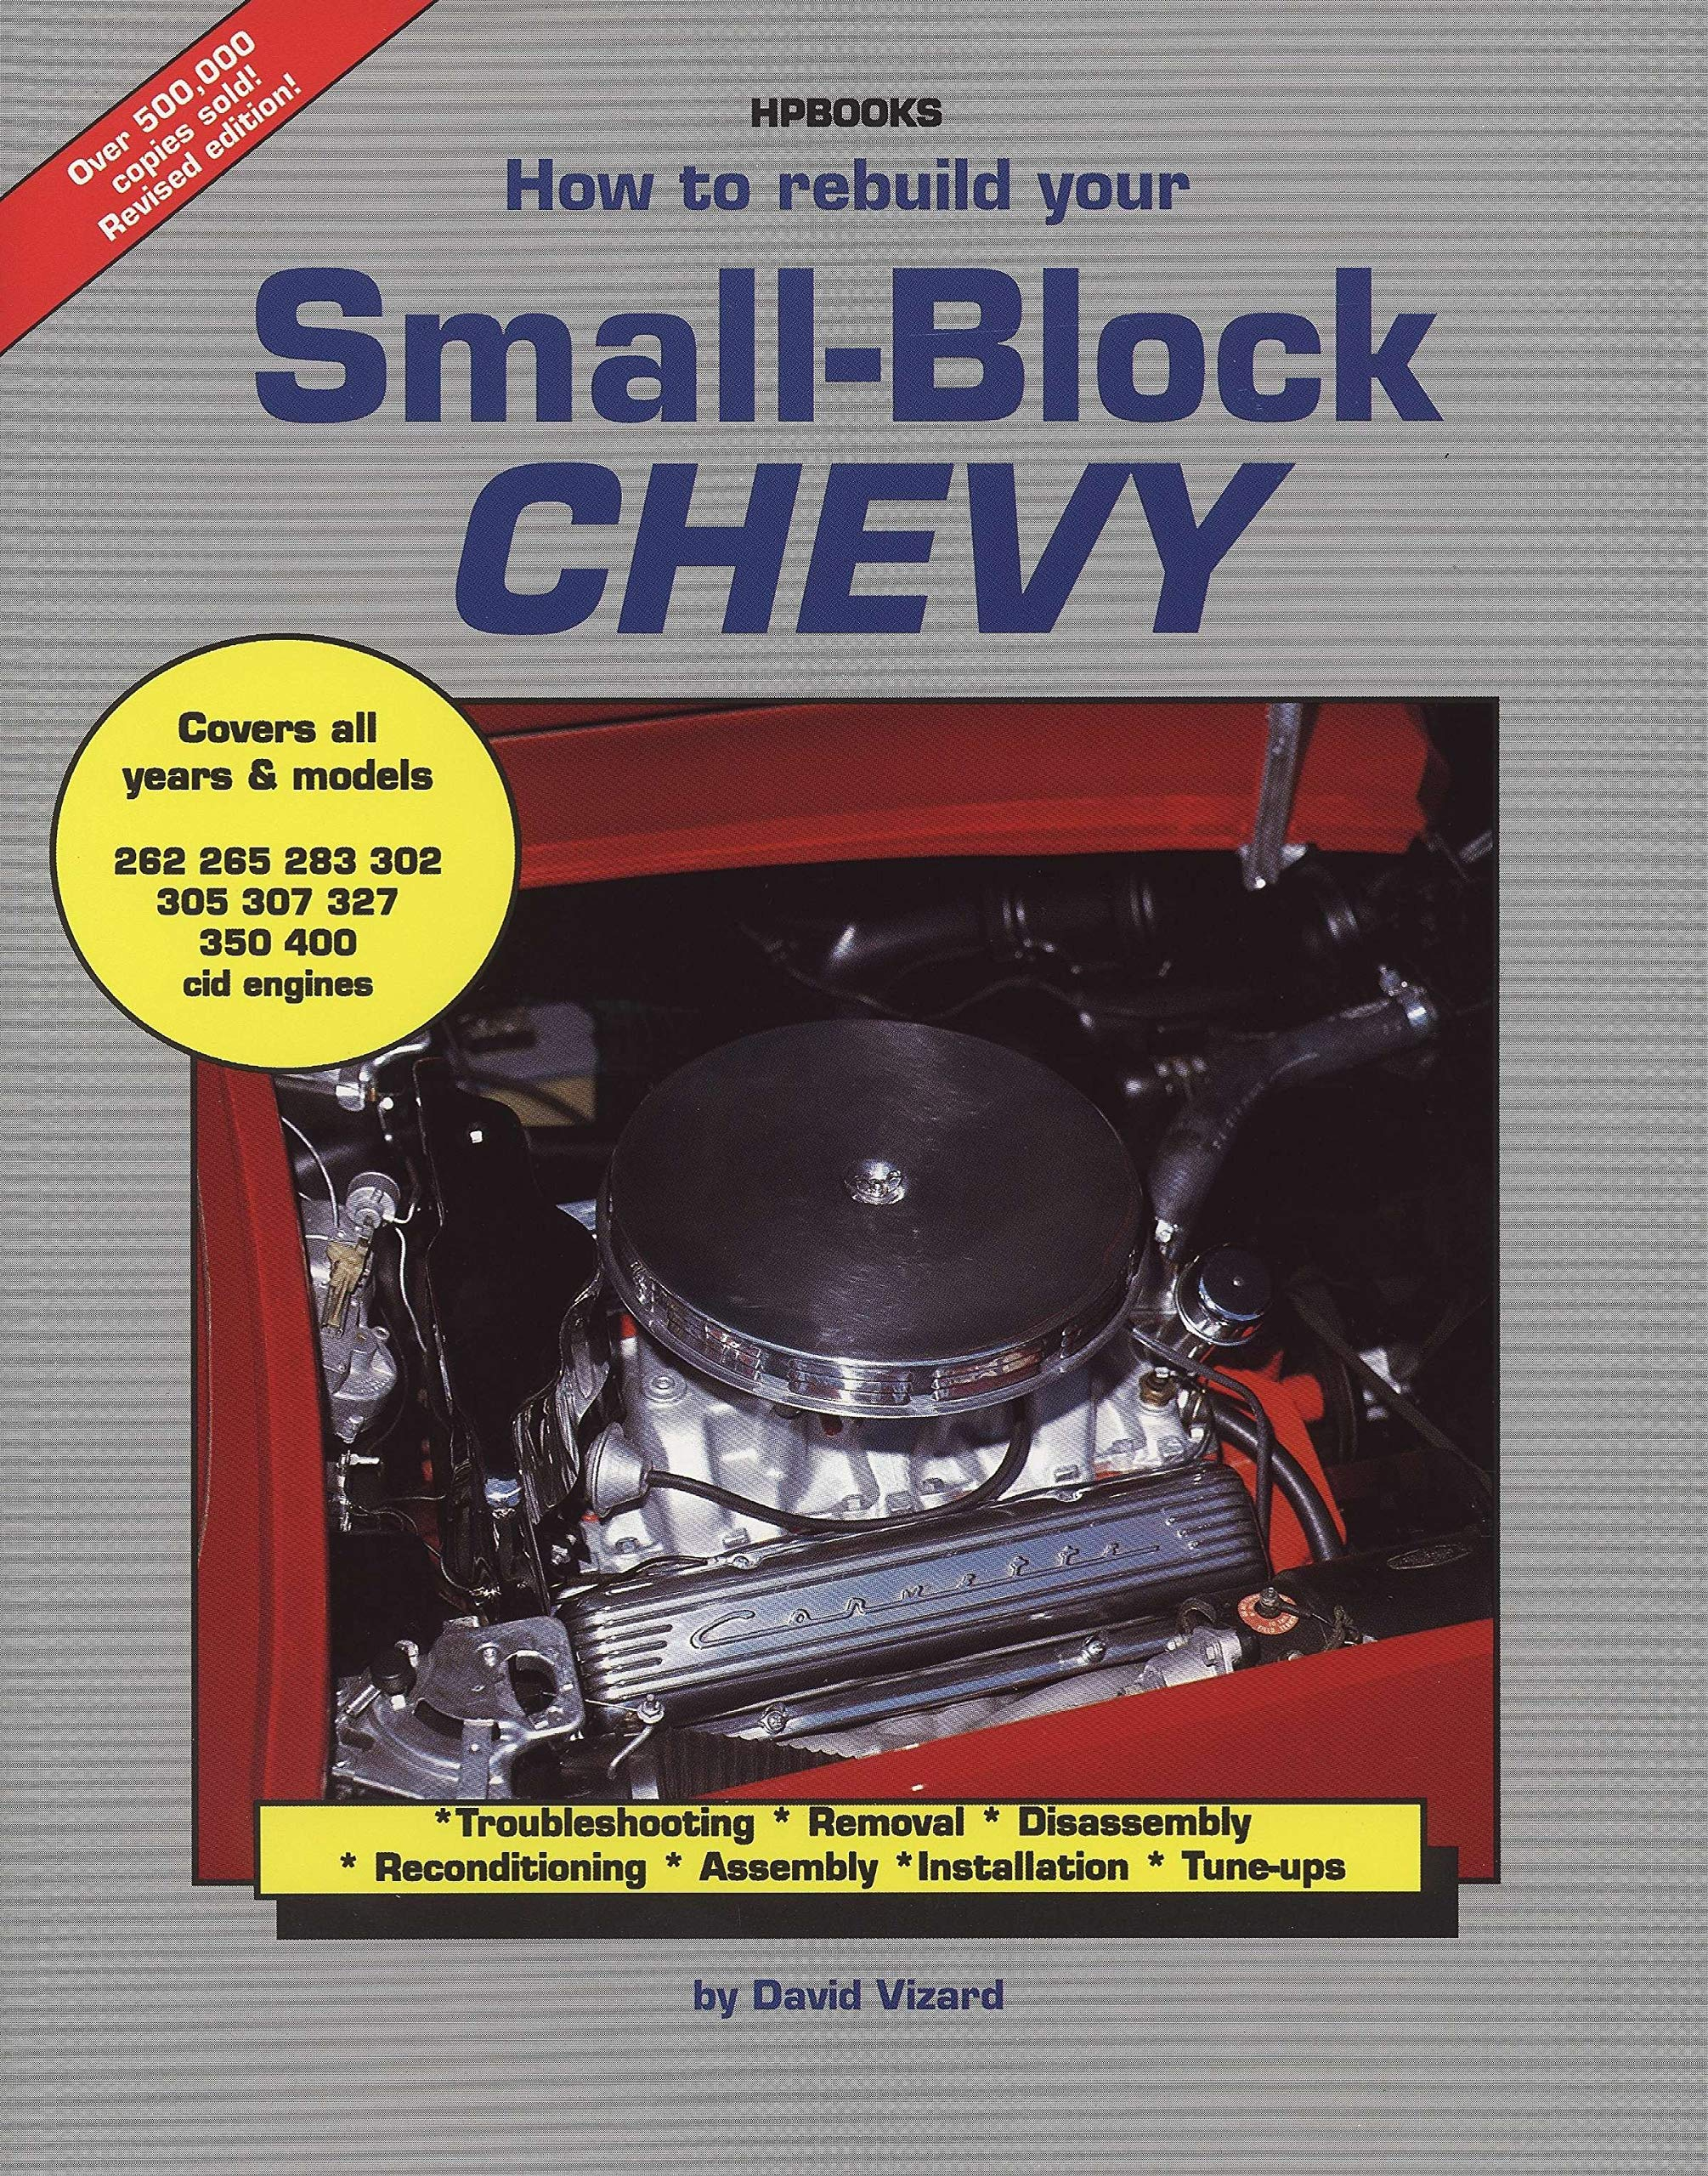 images?q=tbn:ANd9GcQh_l3eQ5xwiPy07kGEXjmjgmBKBRB7H2mRxCGhv1tFWg5c_mWT Small Block Chevy 350 Engine Parts Diagram